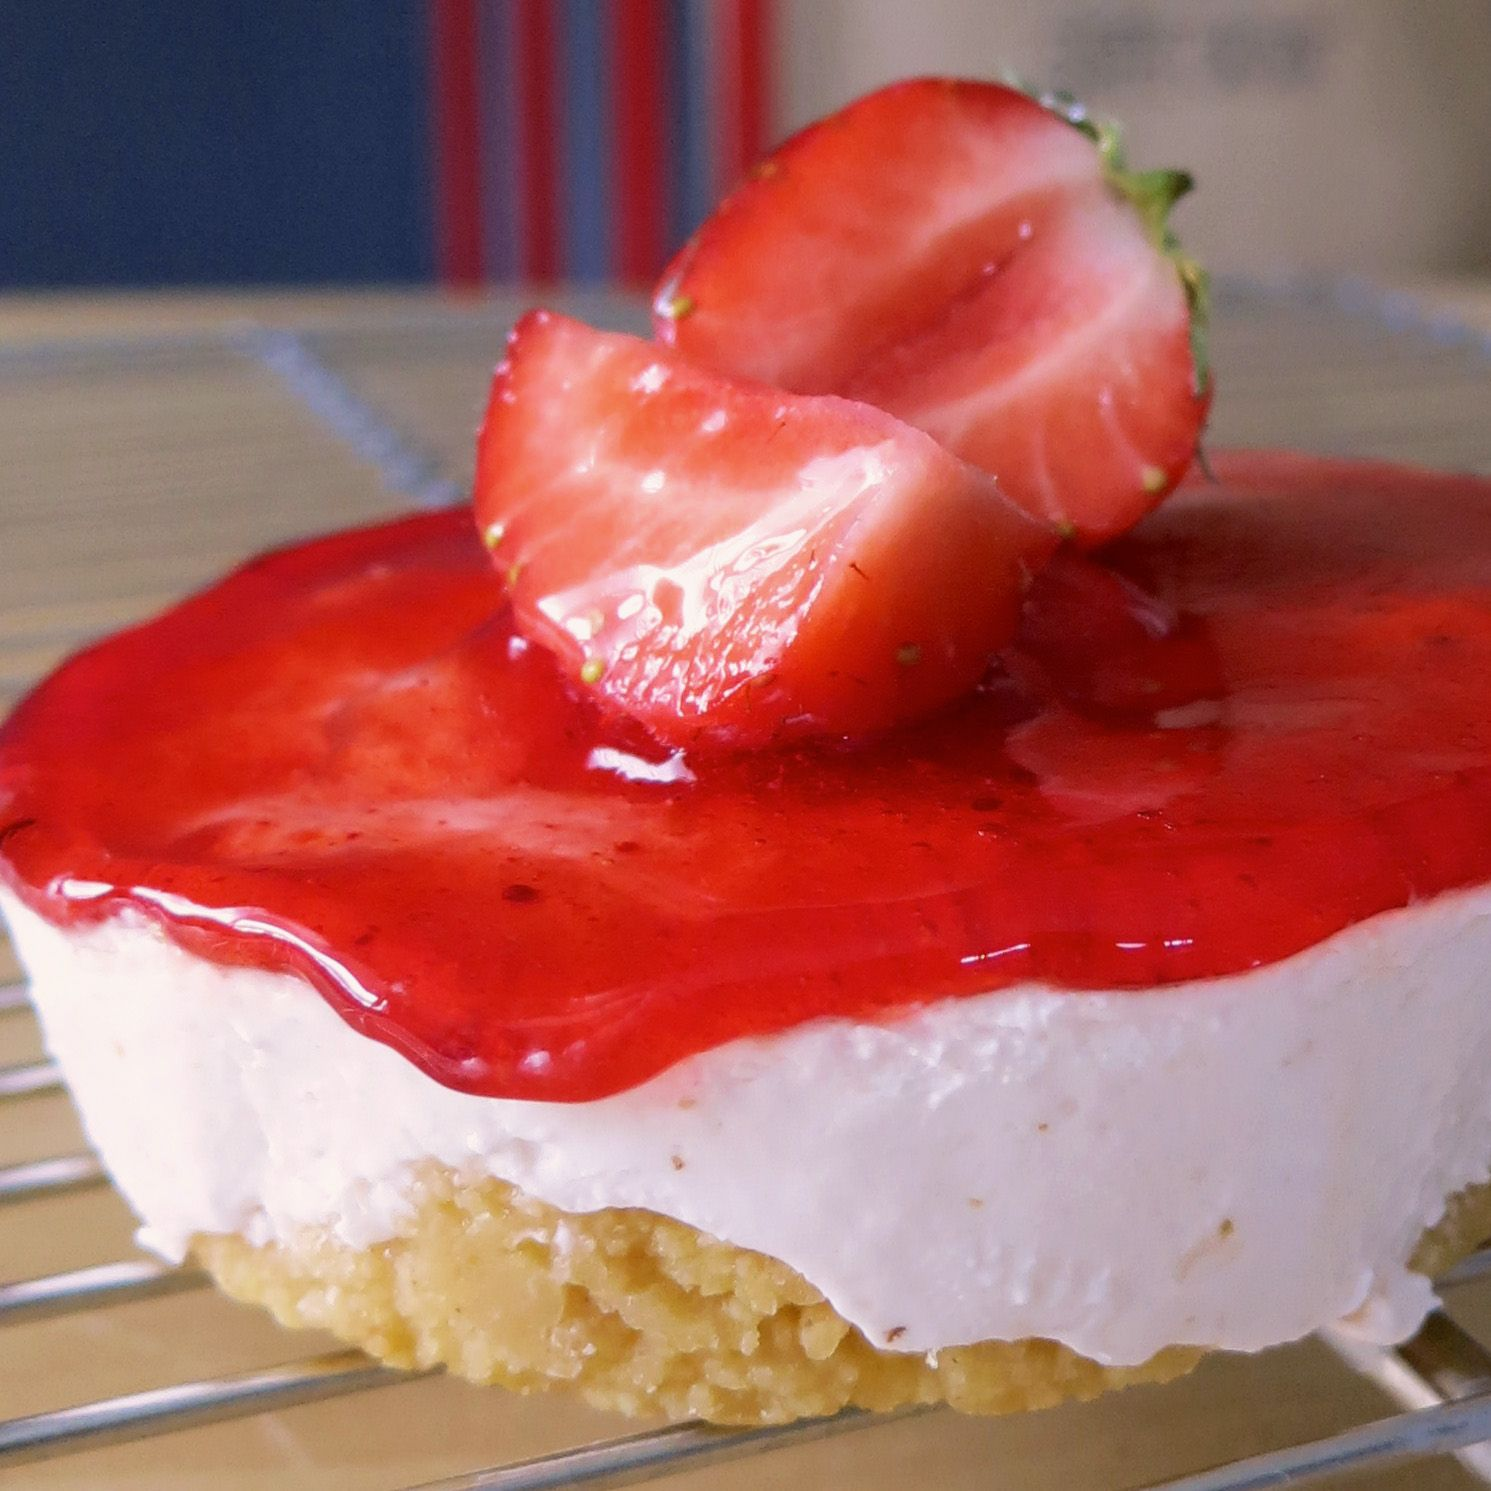 #torta allo #yogurt con #fragole #fresche #strowberry #cake